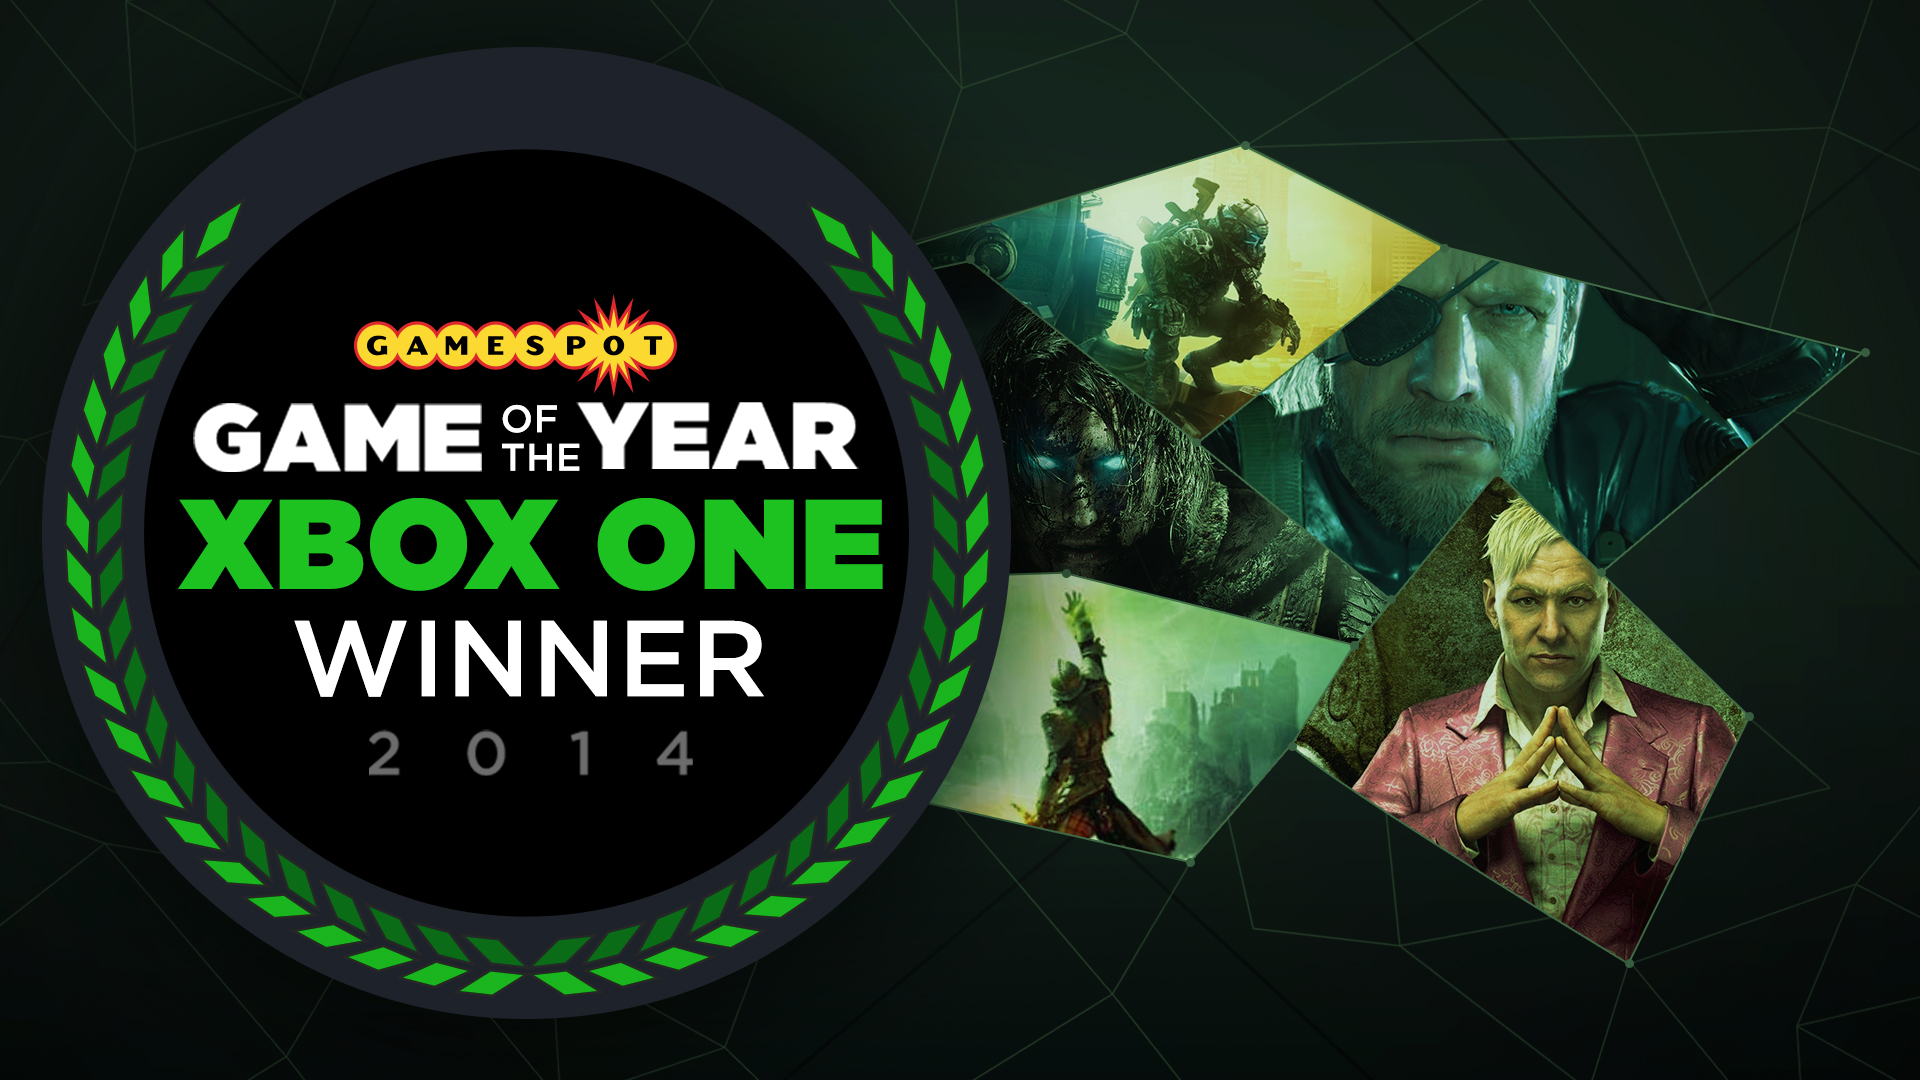 Middle-earth: Shadow of Mordor - Xbox One Game of the Year